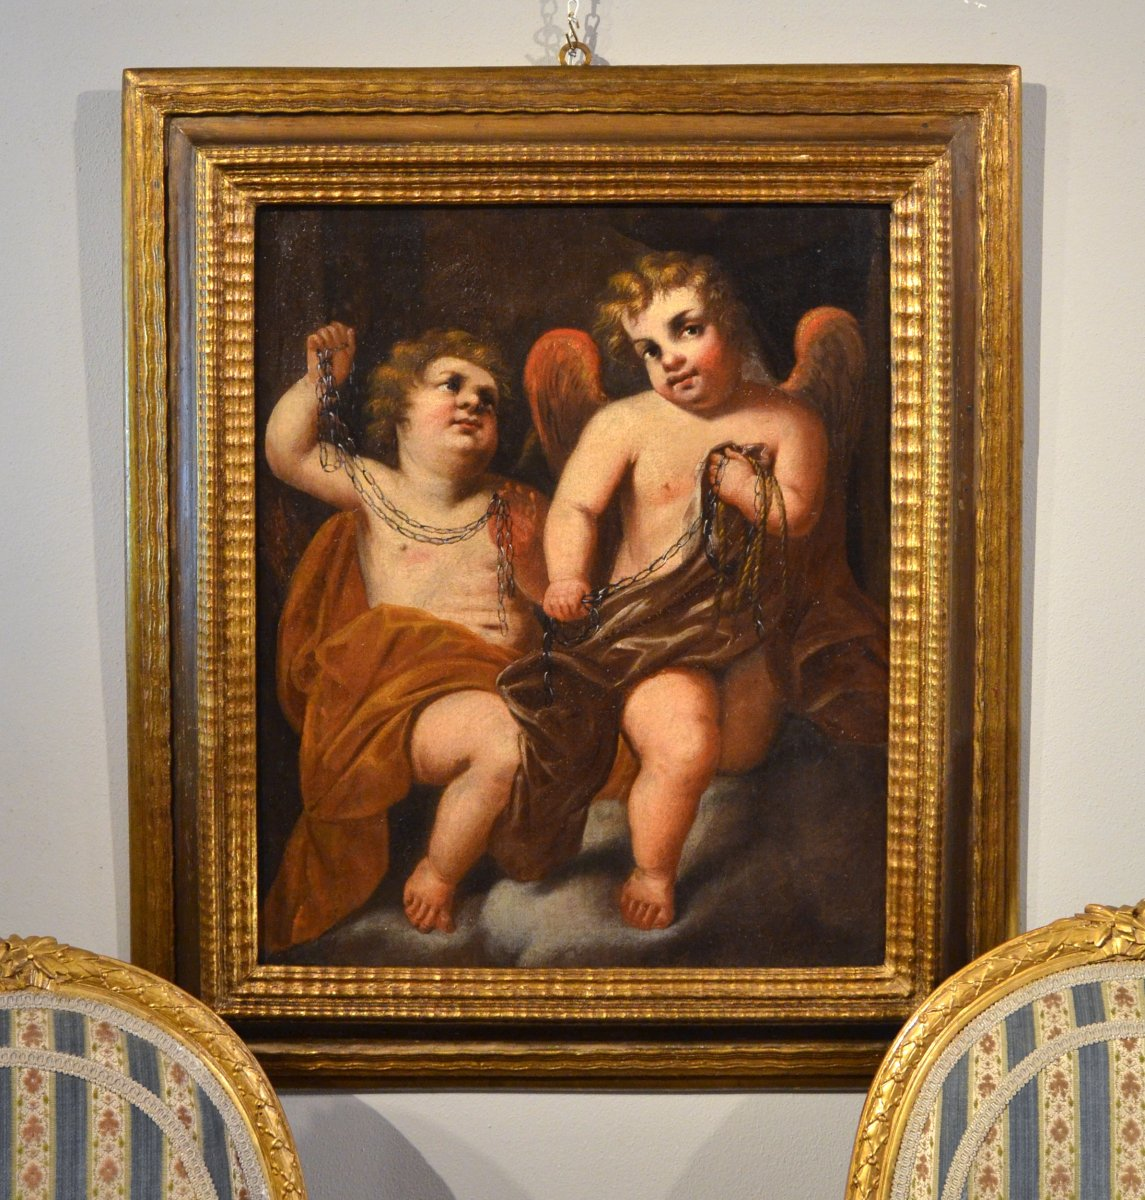 Giovanni Battista Merano (genoa 1632 - Plaisance 1698), Pair Of Winged Putti